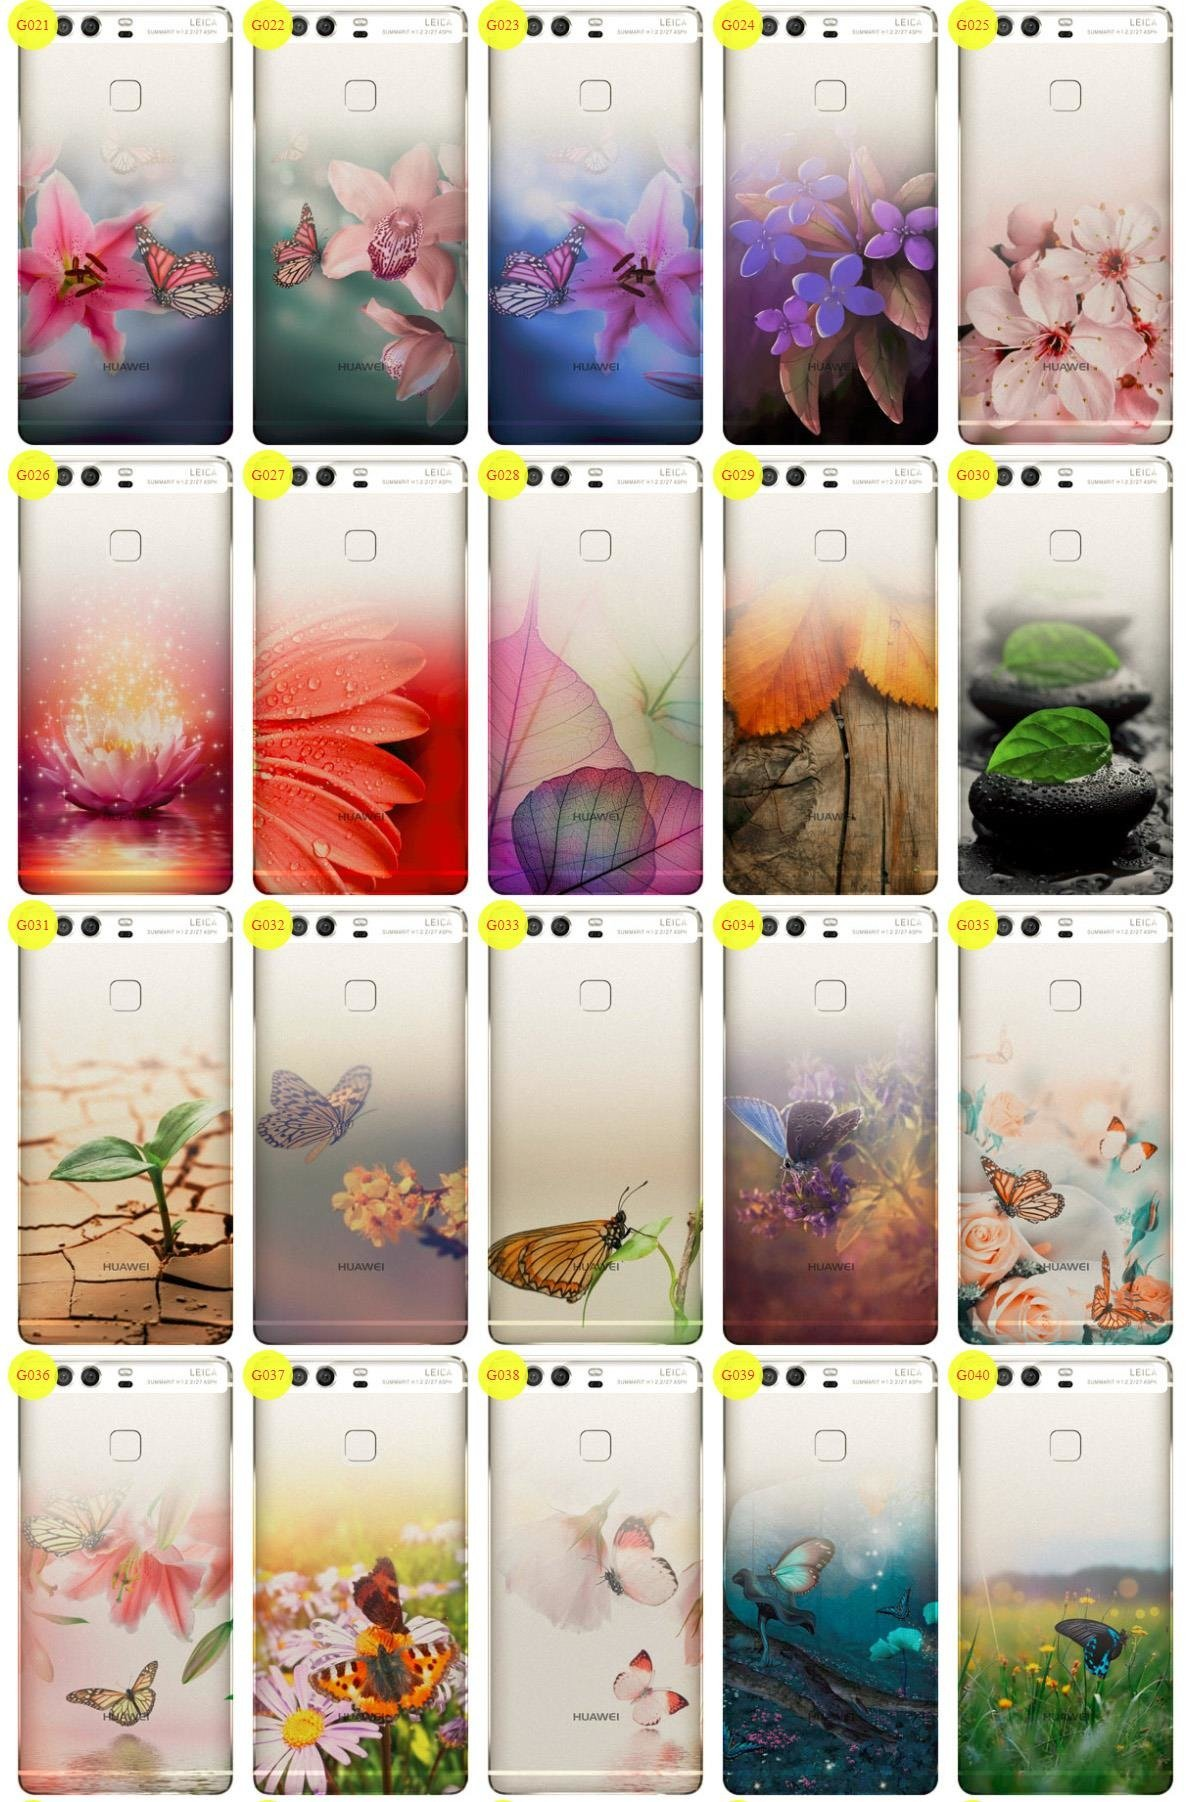 Case Cover Overprint Kreatui GRADIENT HUAWEI P9 PLUS